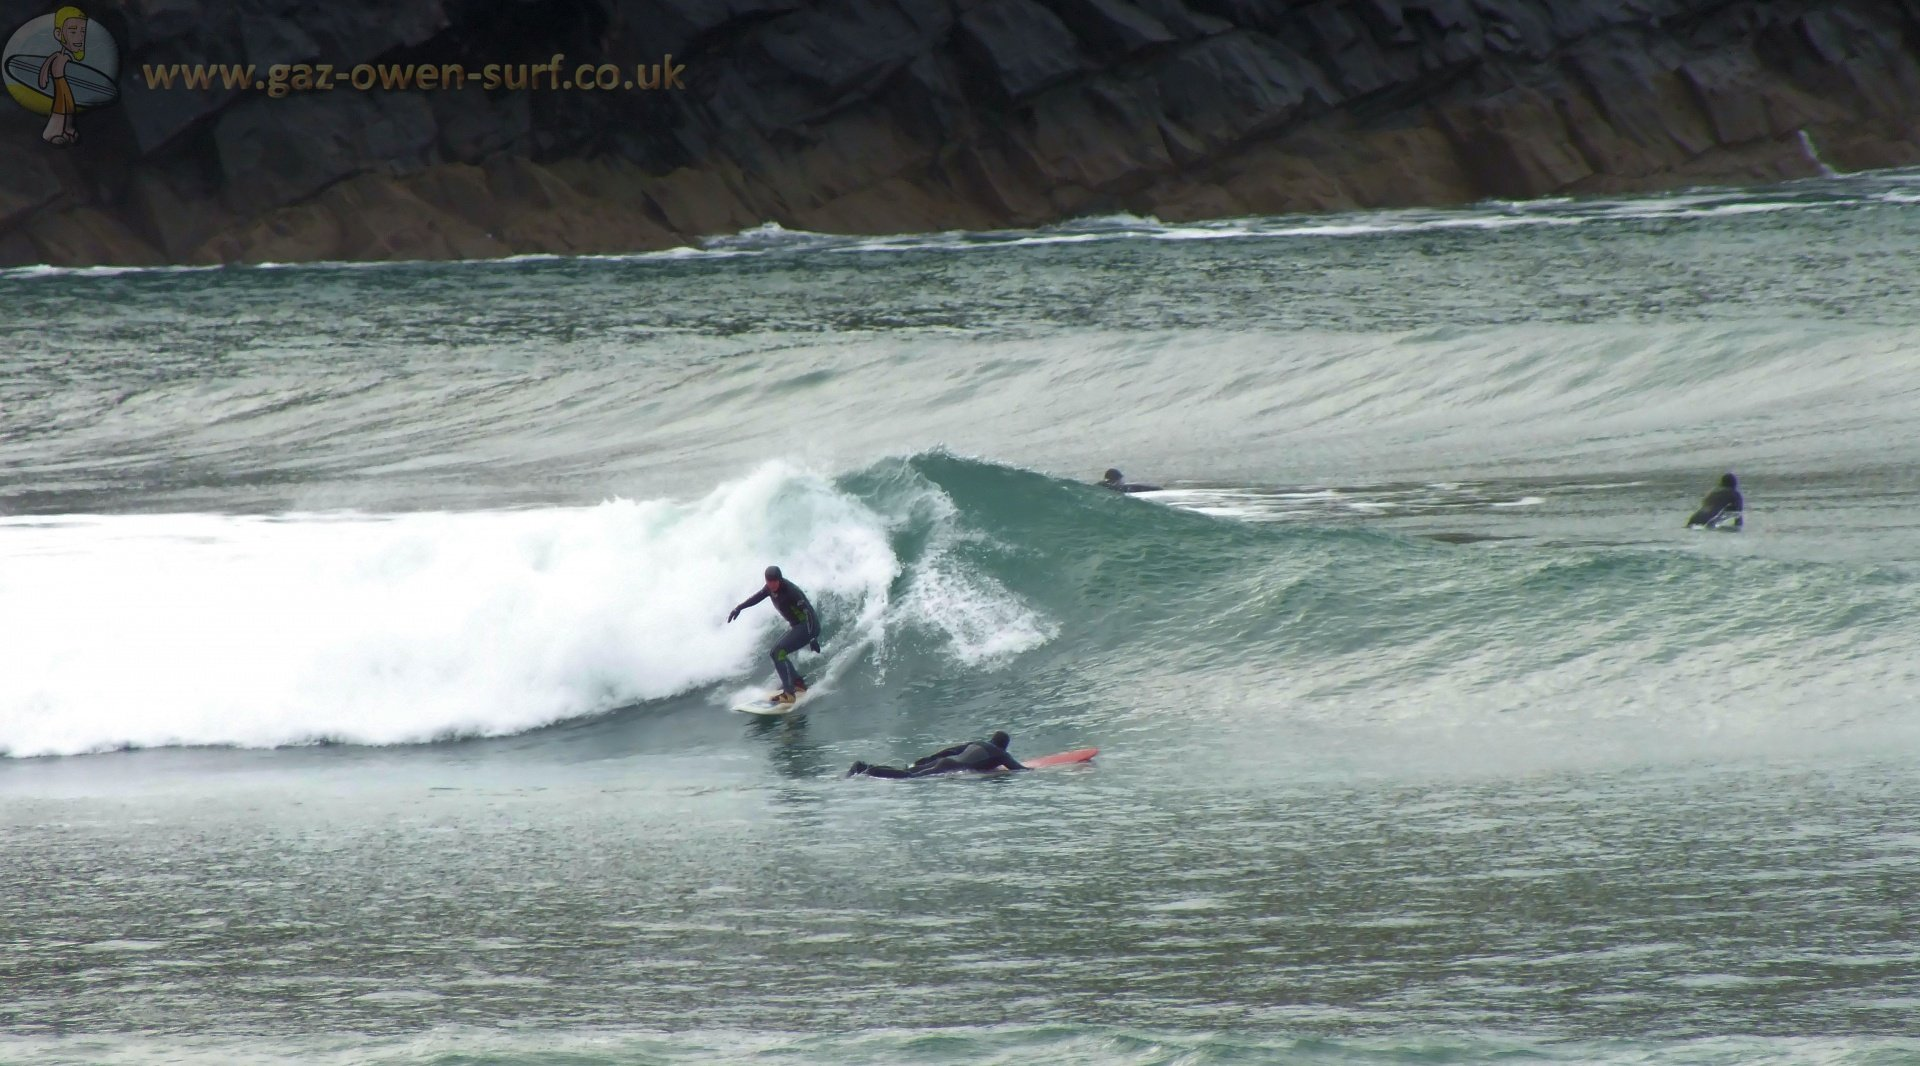 user286087's photo of Hells Mouth (Porth Neigwl)